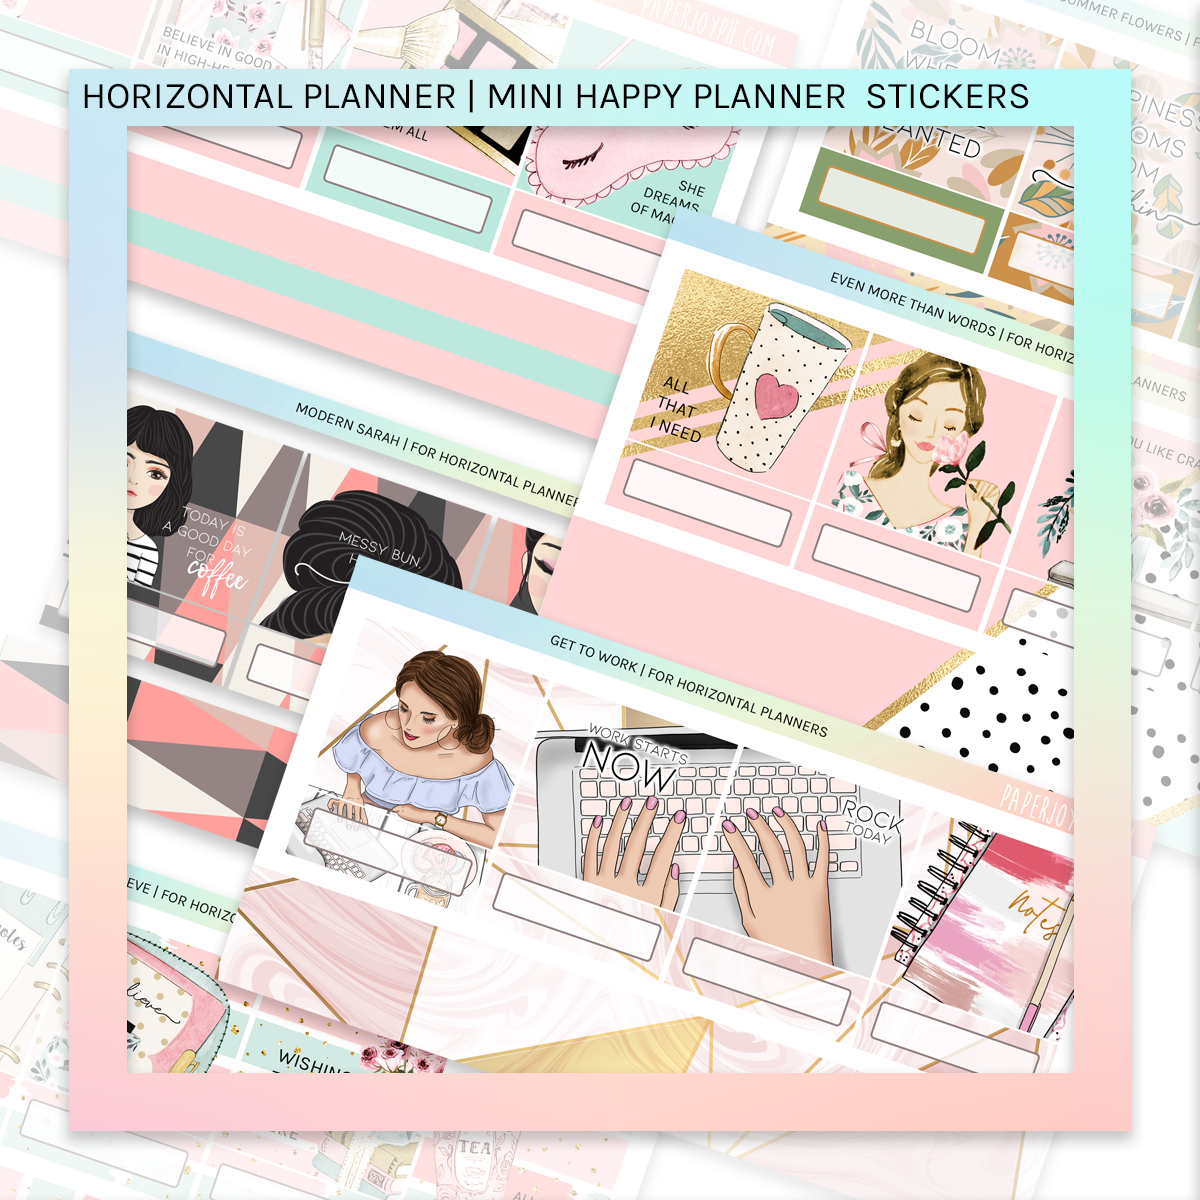 HORIZONTAL PLANNER STICKER KIT | Yas Queen